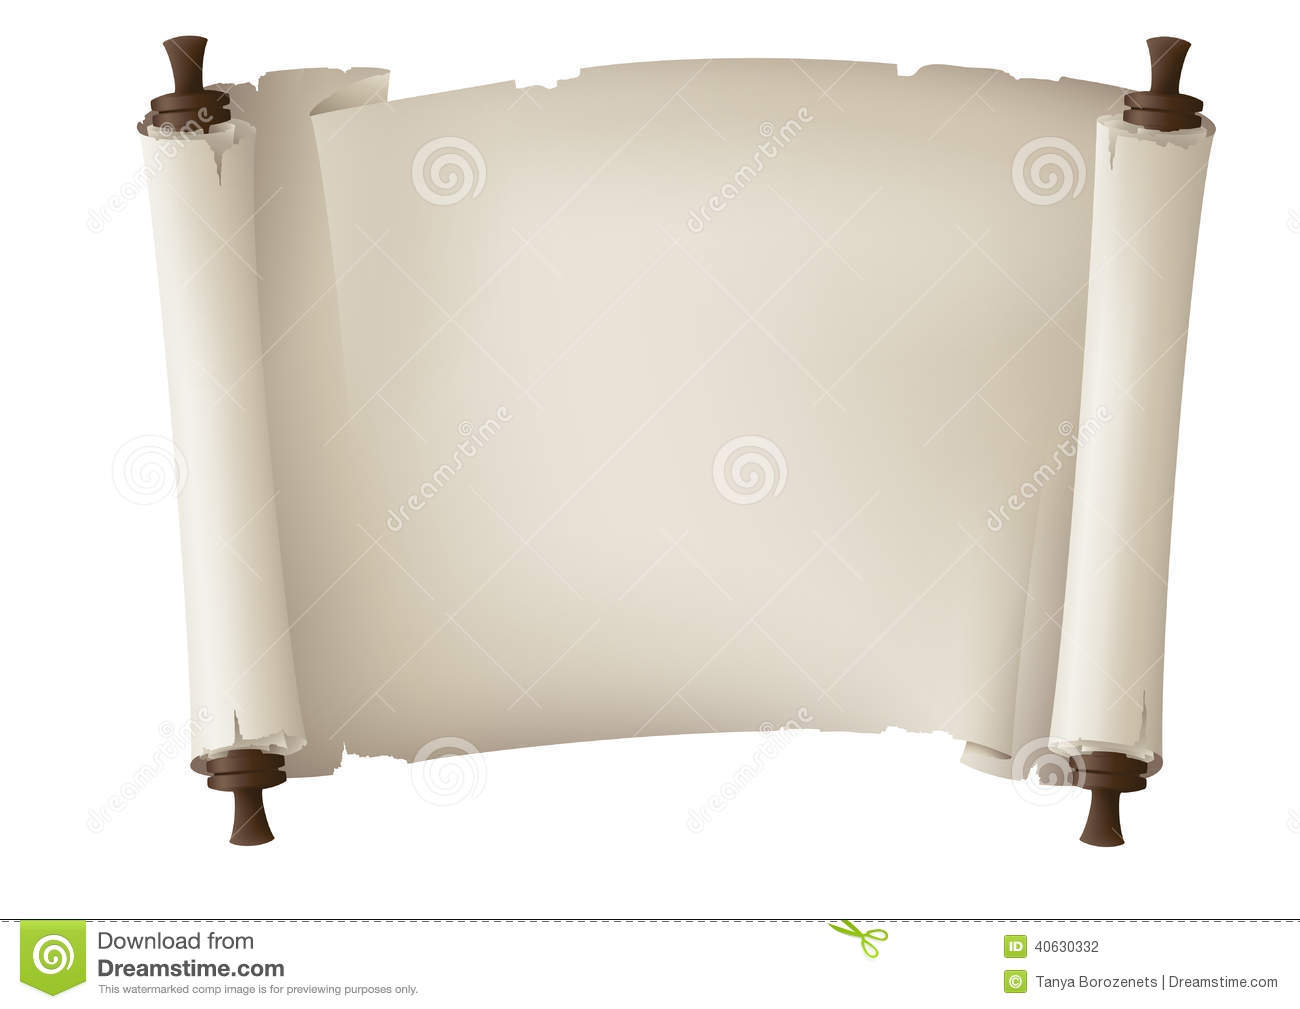 This is a photo of Sly Old Scroll Drawing